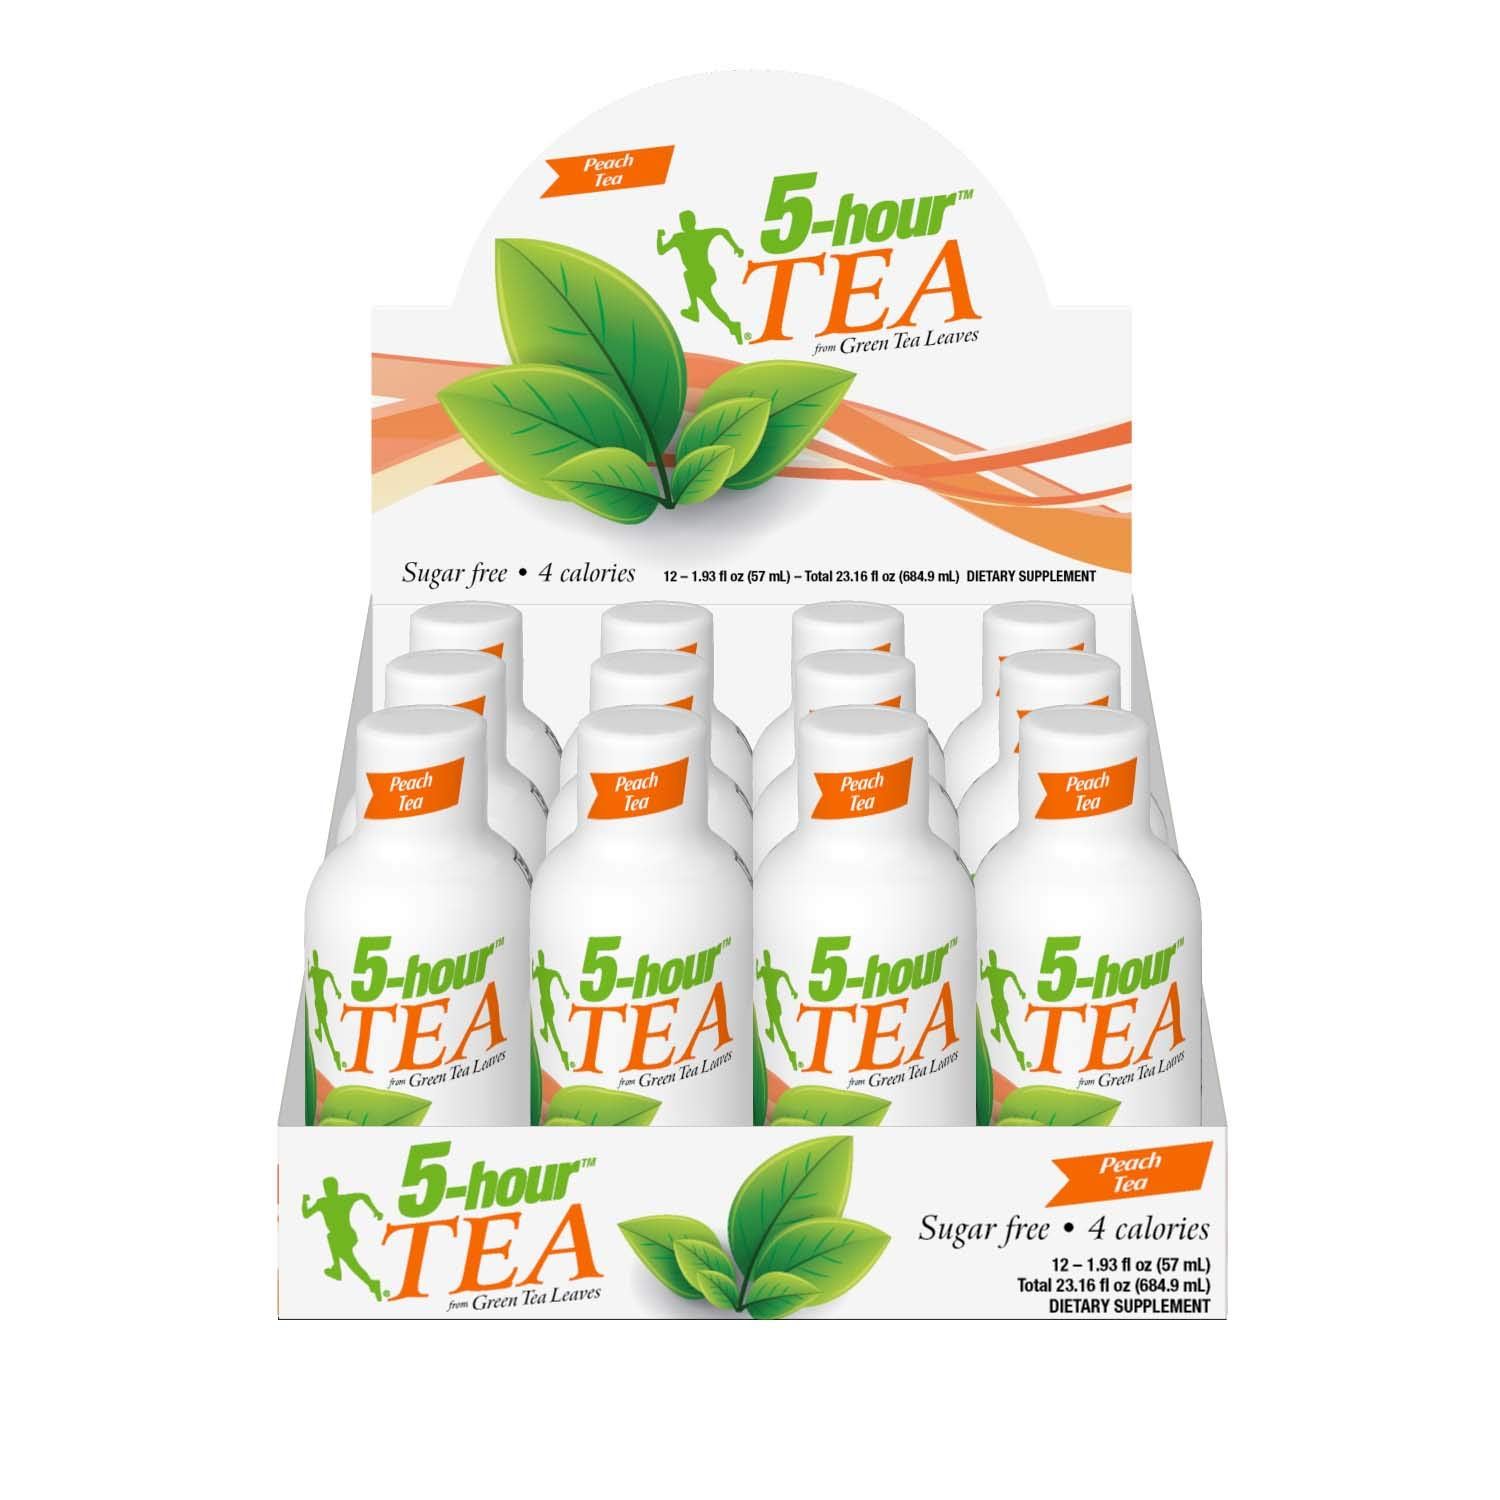 5-hour TEA, Peach Tea Flavored Energy Shots, 1.93 oz, 24 Count by 5-hour ENERGY (Image #5)